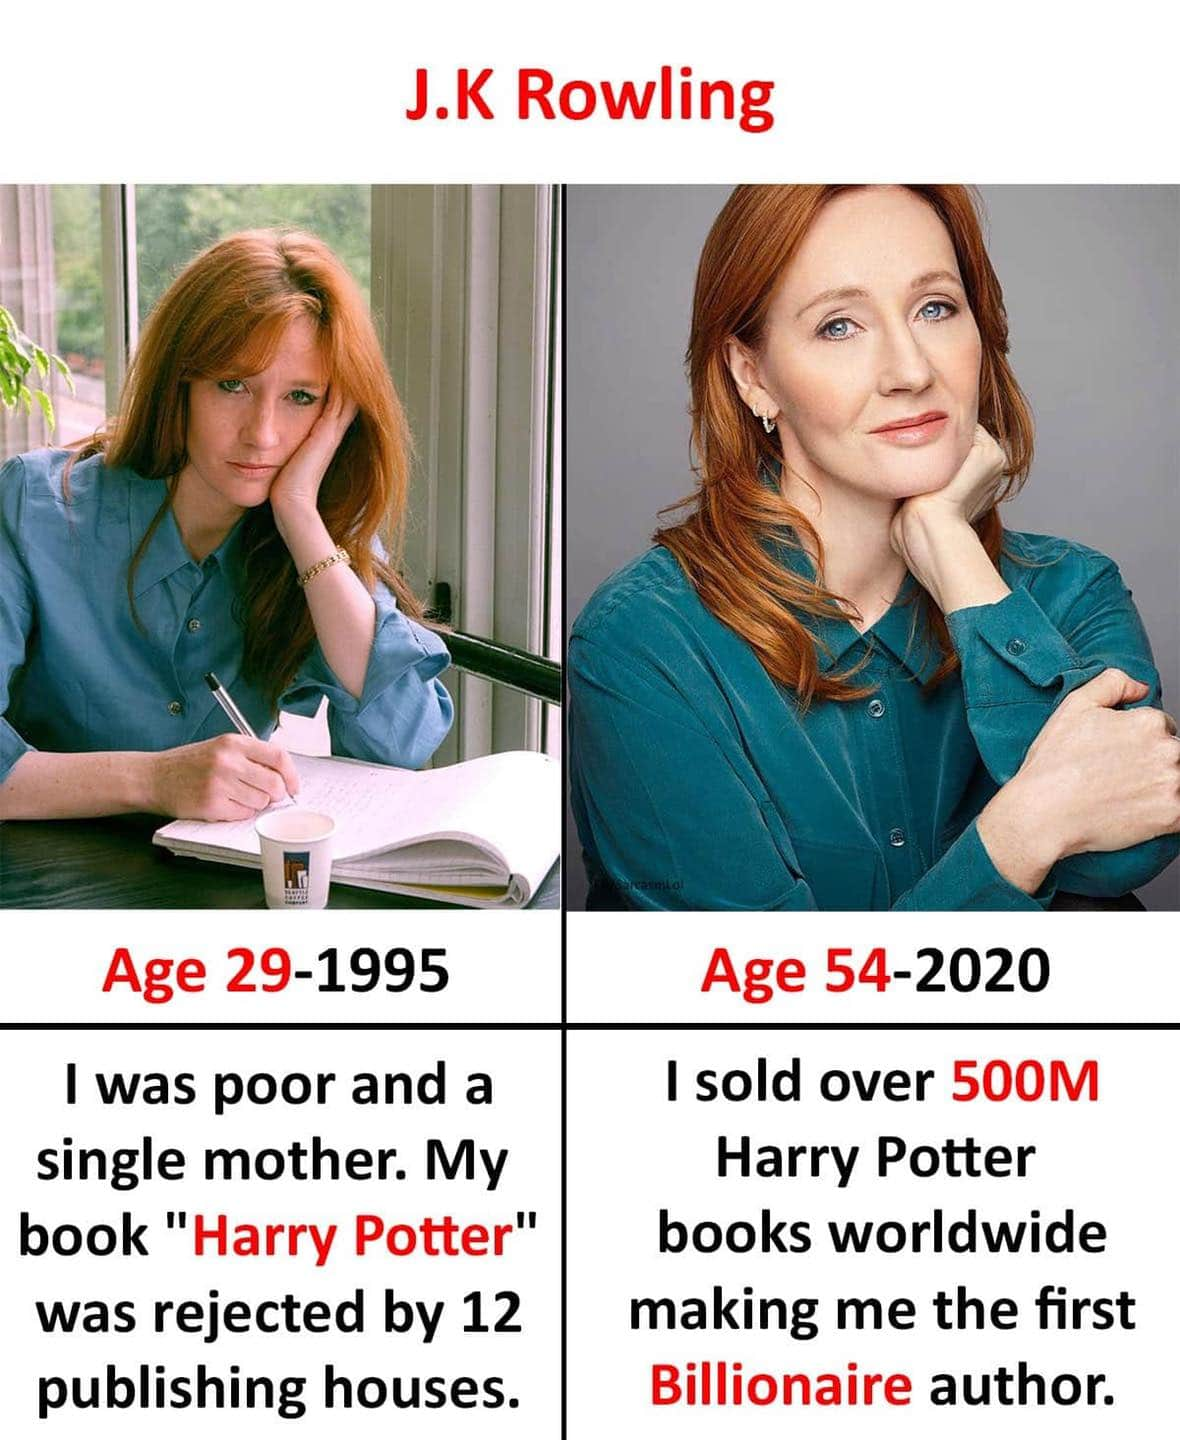 [image] J.K. Rowling's story